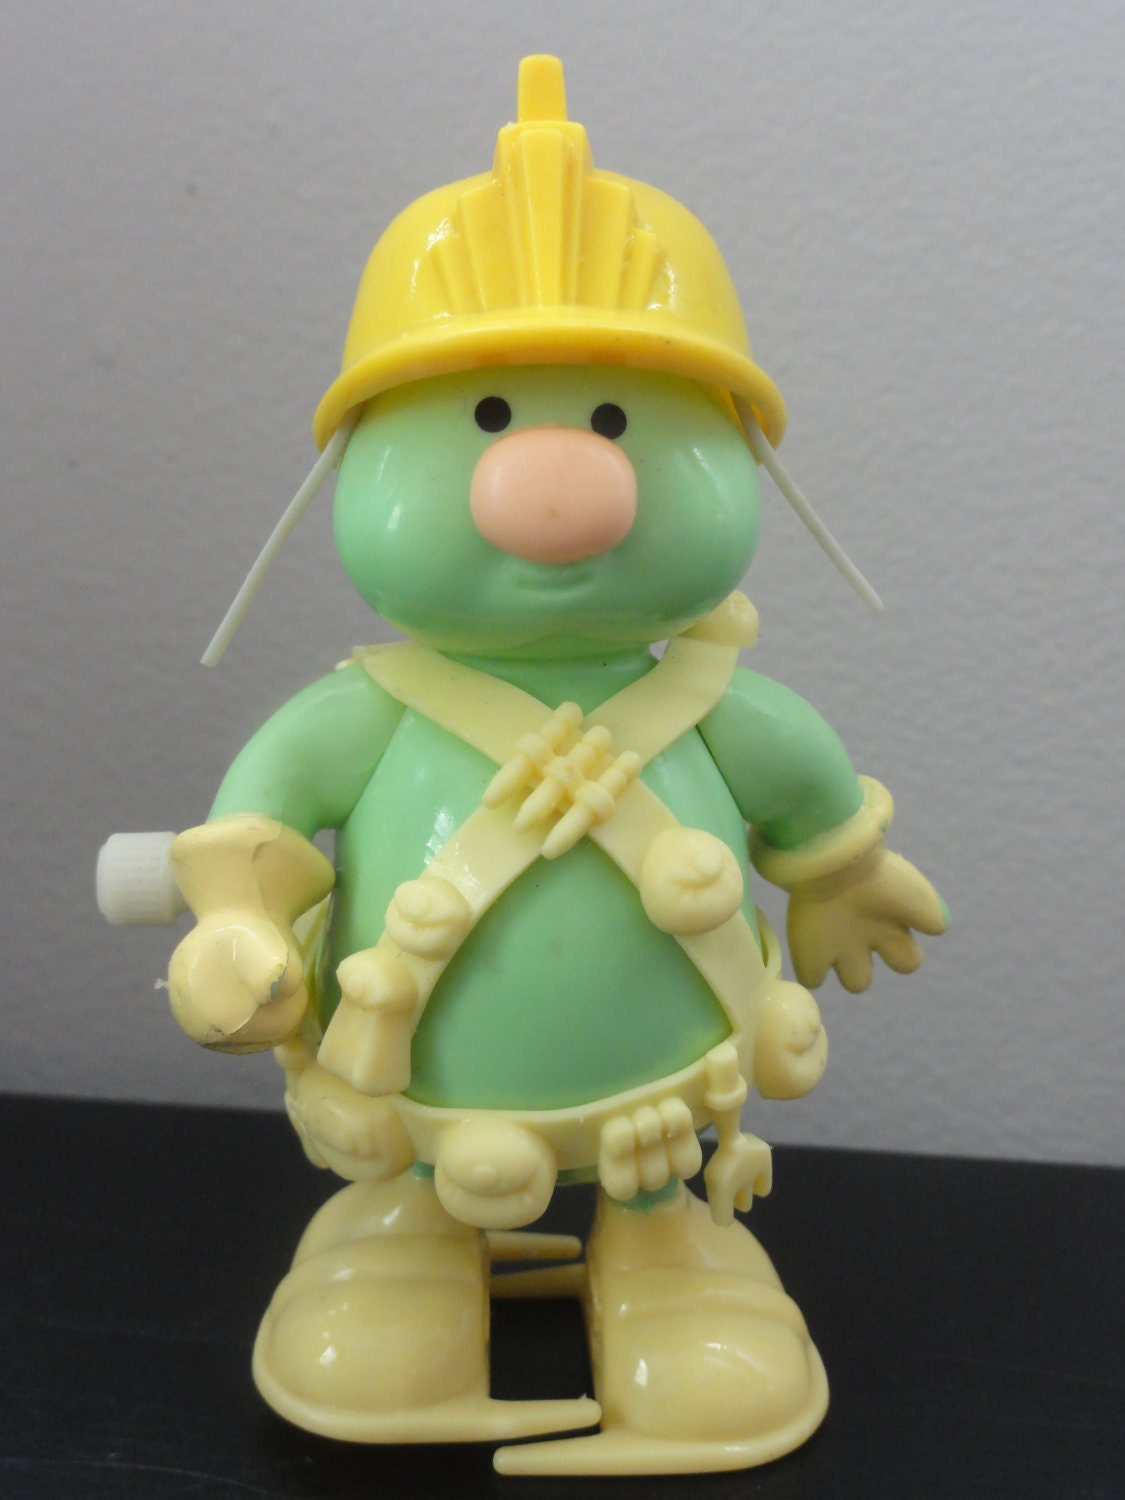 Fraggle Rock Wind Up Toy 1980s Characters From Fraggle Rock